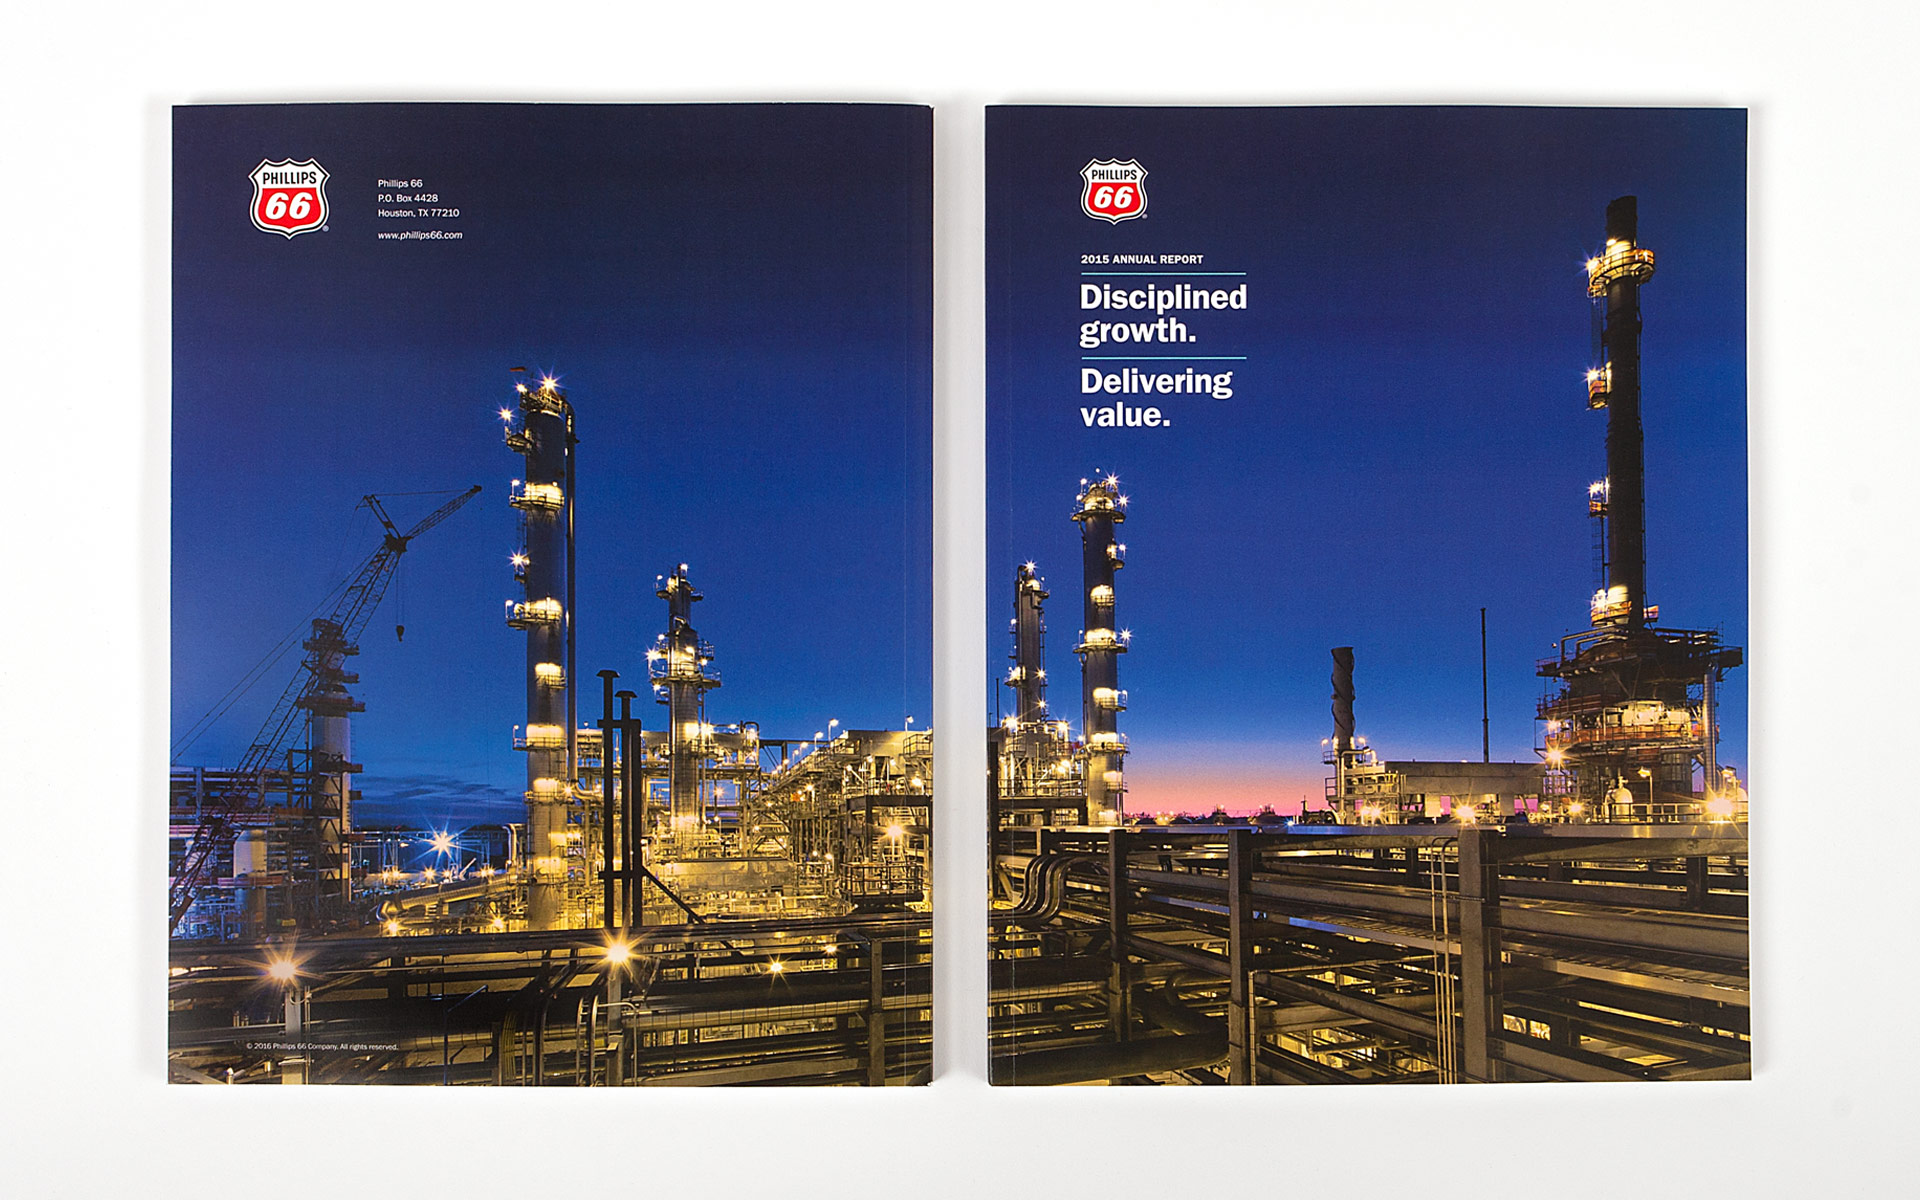 Phillips 66 2015 Annual Report spread 1